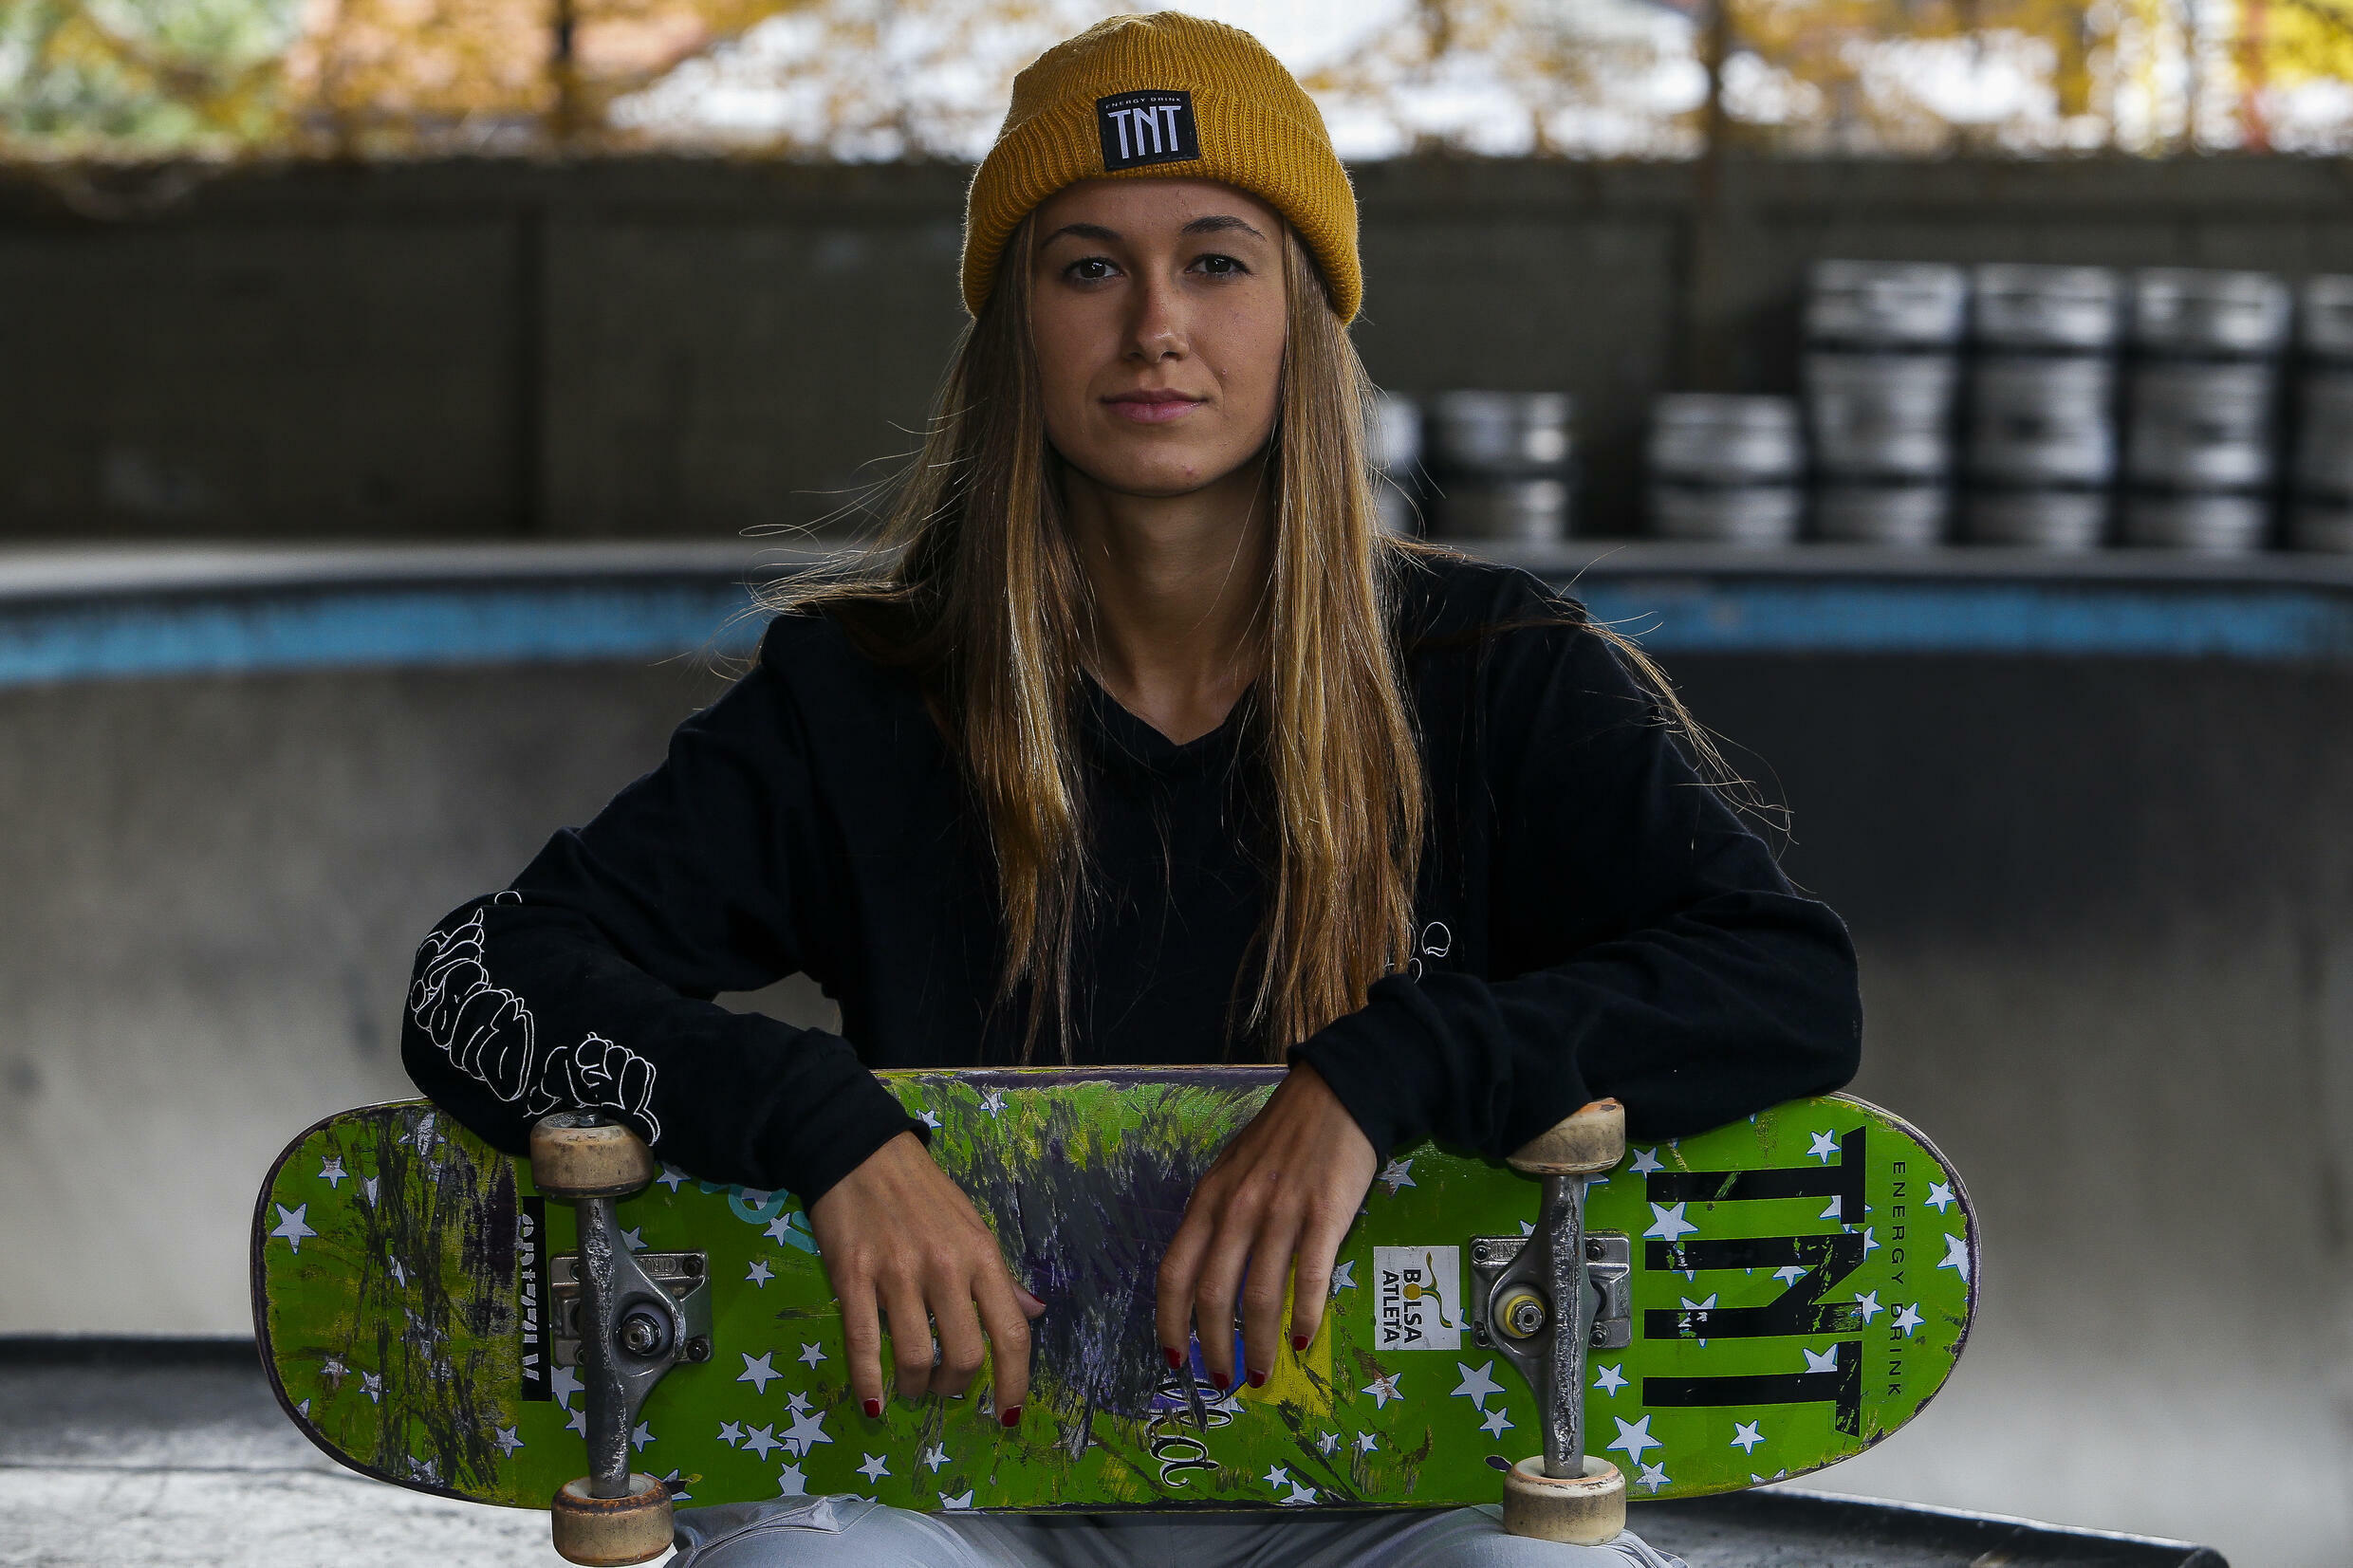 Dora Varella was one of the only girls at the skate park when she started 10 years ago